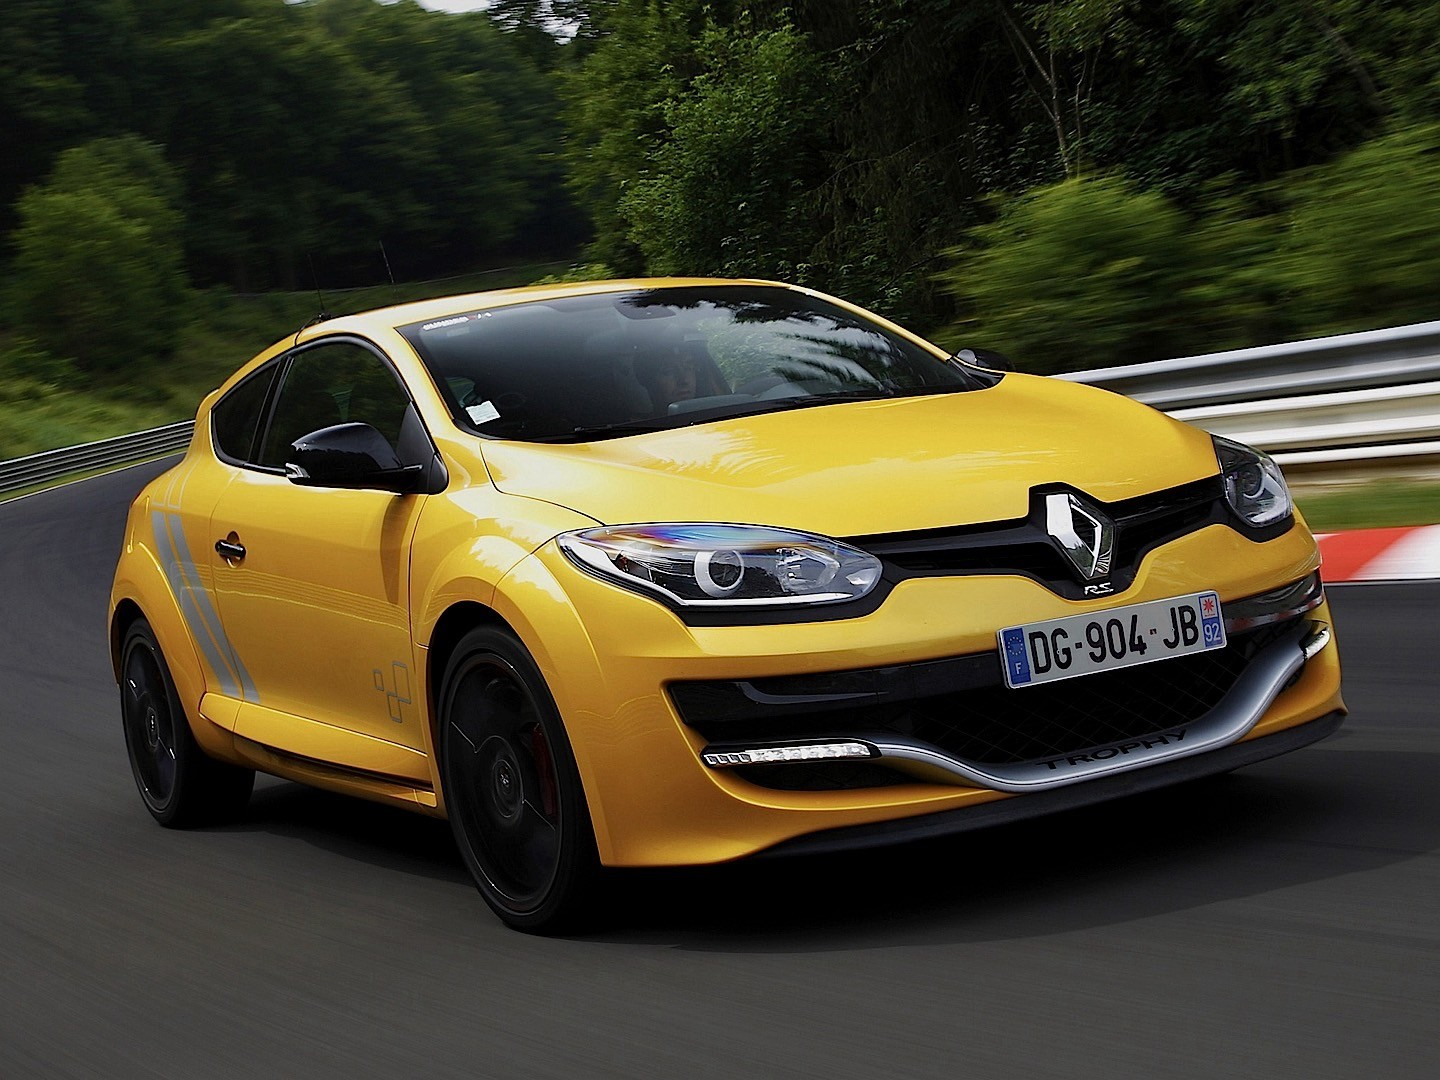 renault megane rs coupe specs photos 2014 2015 2016 2017 autoevolution. Black Bedroom Furniture Sets. Home Design Ideas